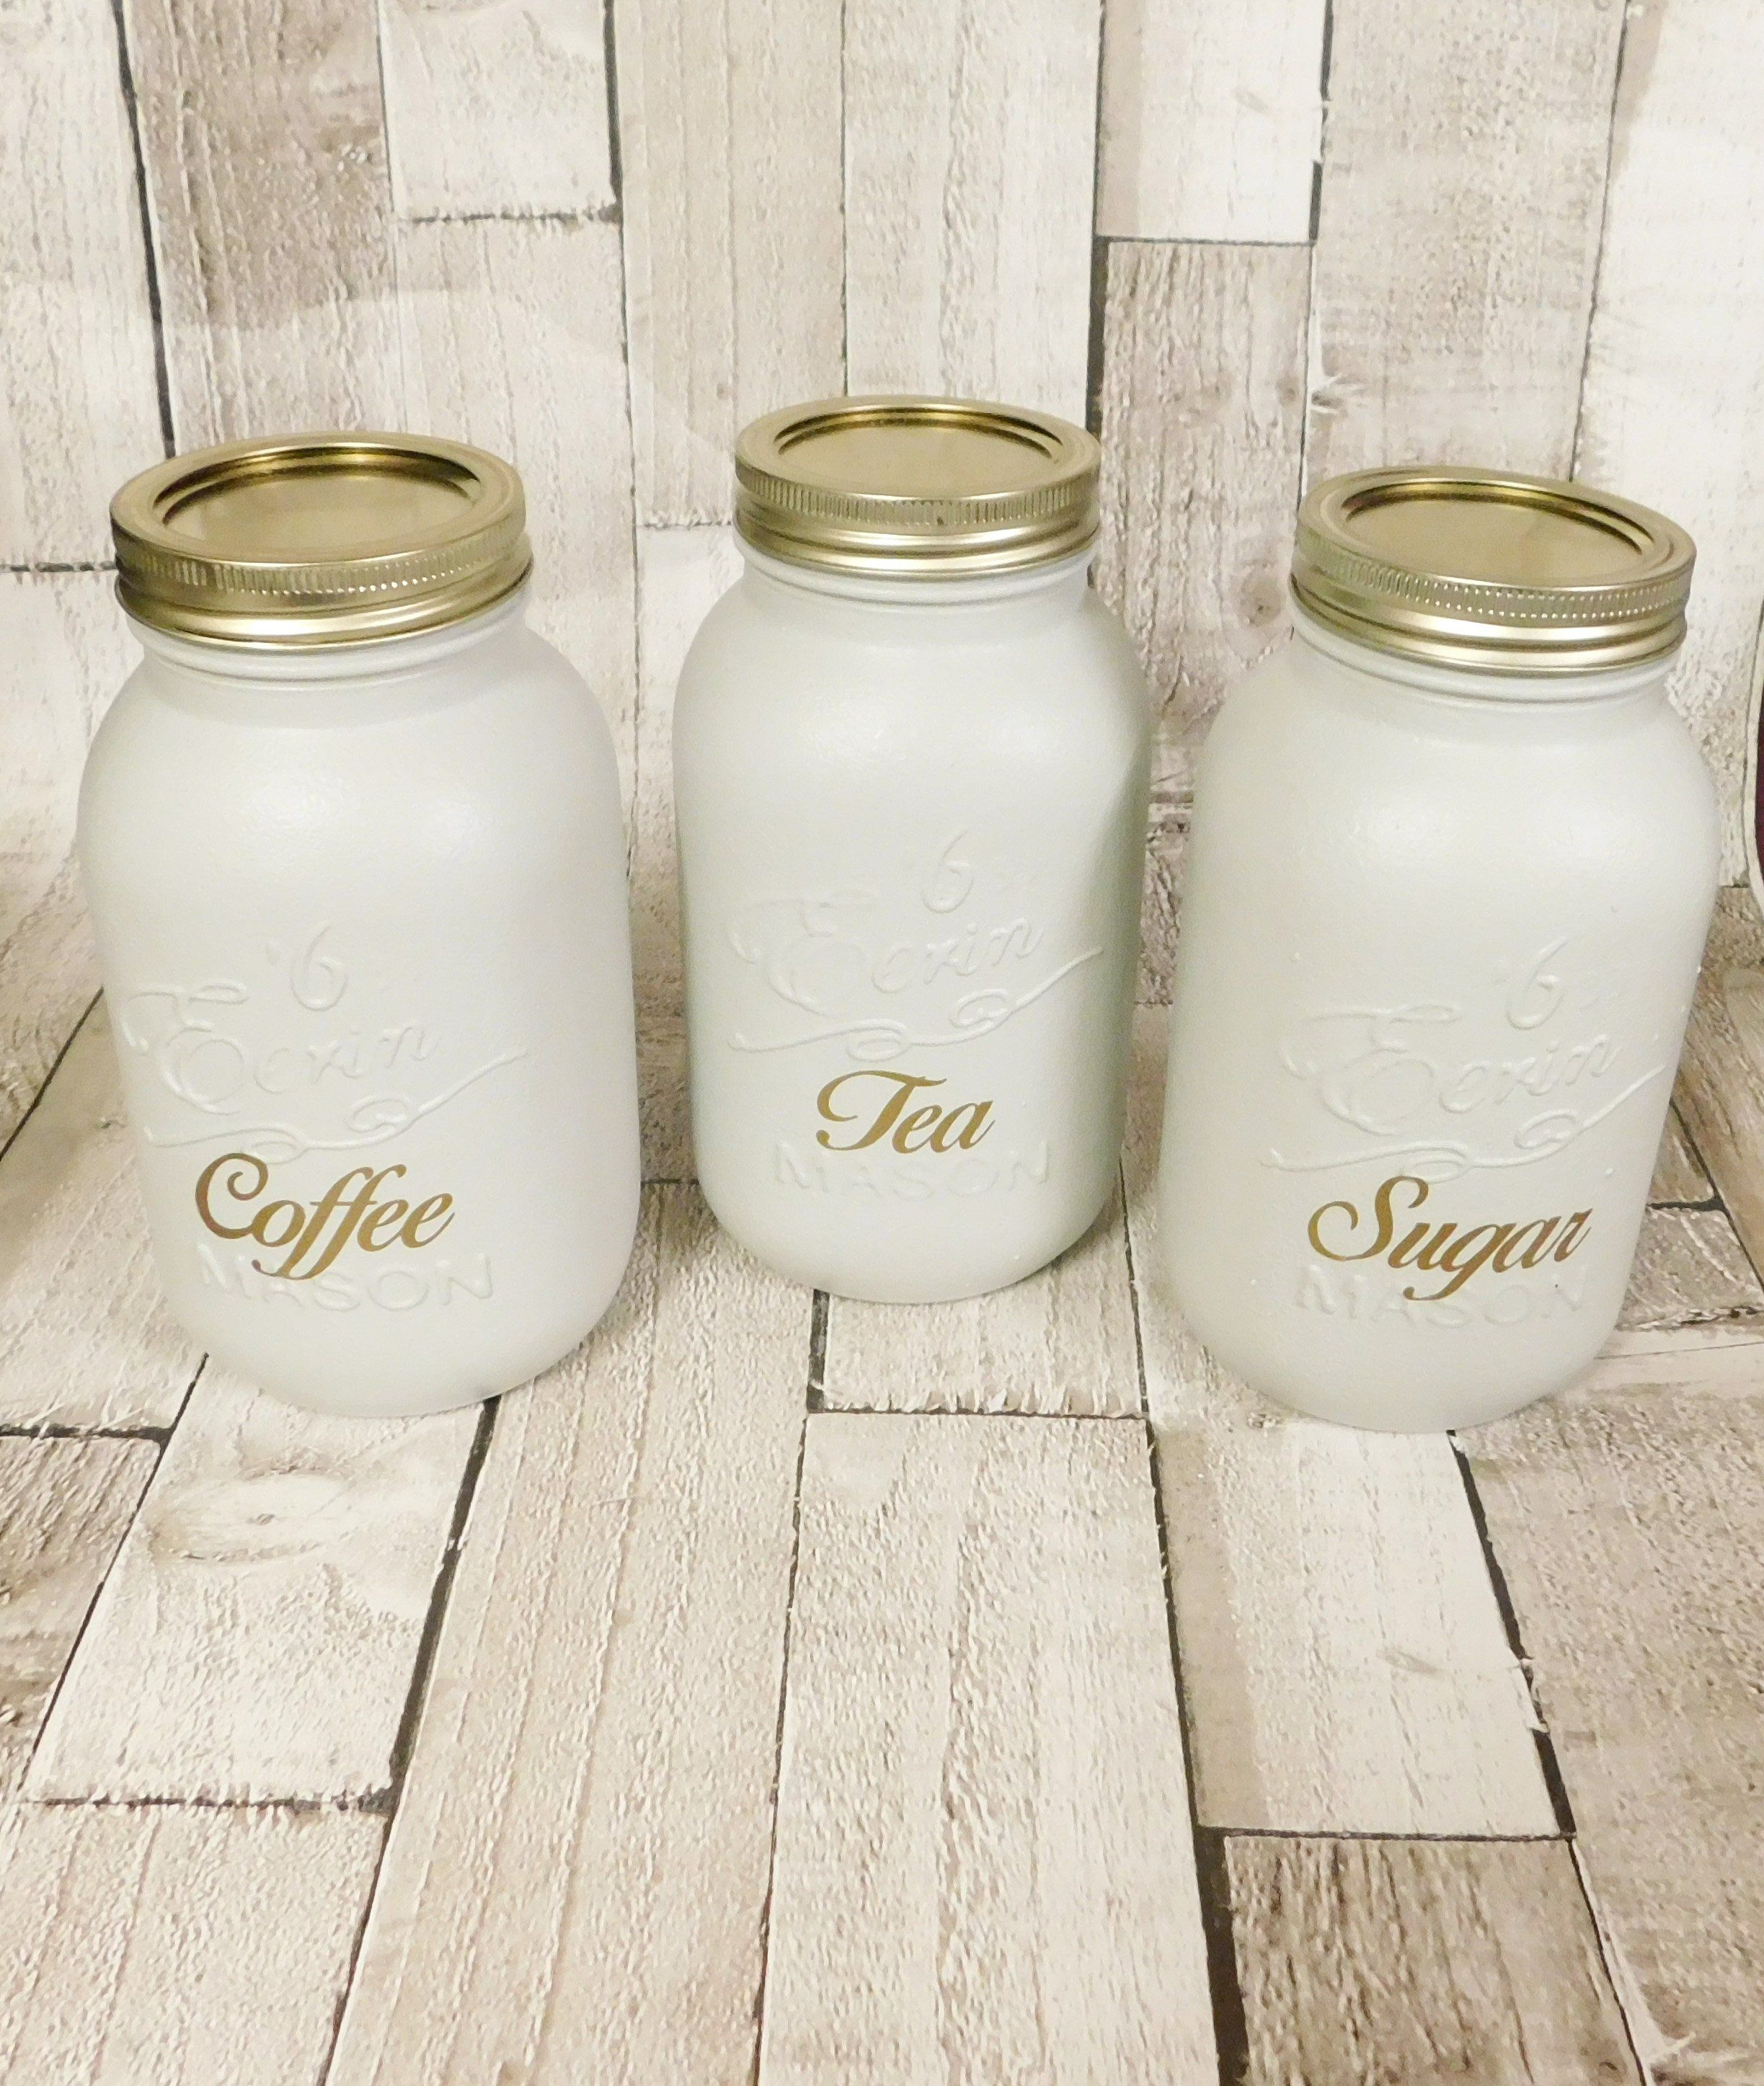 Grey Black Or White Kitchen Canister Jars Tea Coffee Sugar Etsy Kitchen Jars Storage Kilner Jars Tea Coffee Sugar Jars